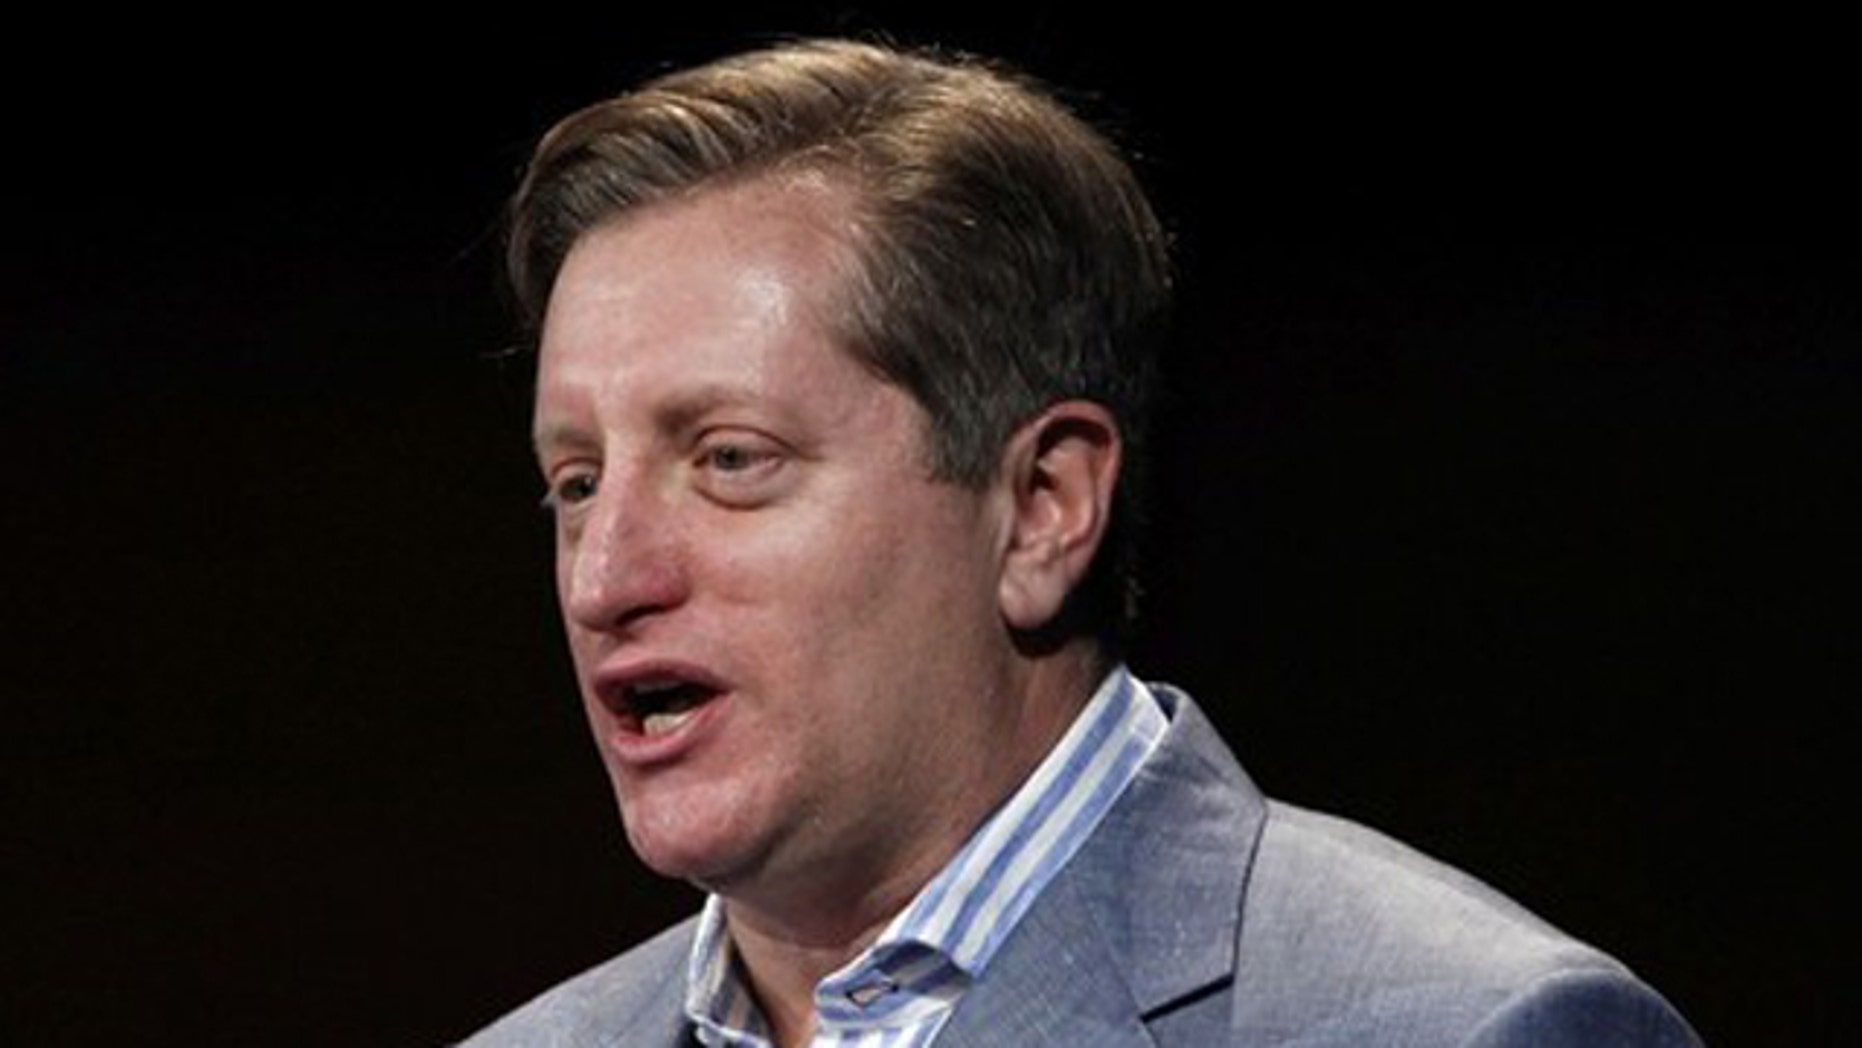 Steve Eisman, senior portfolio manager of the FrontPoint Financial Services Fund, speaks at the 16th annual Sohn Investment Conference in New York May 25.